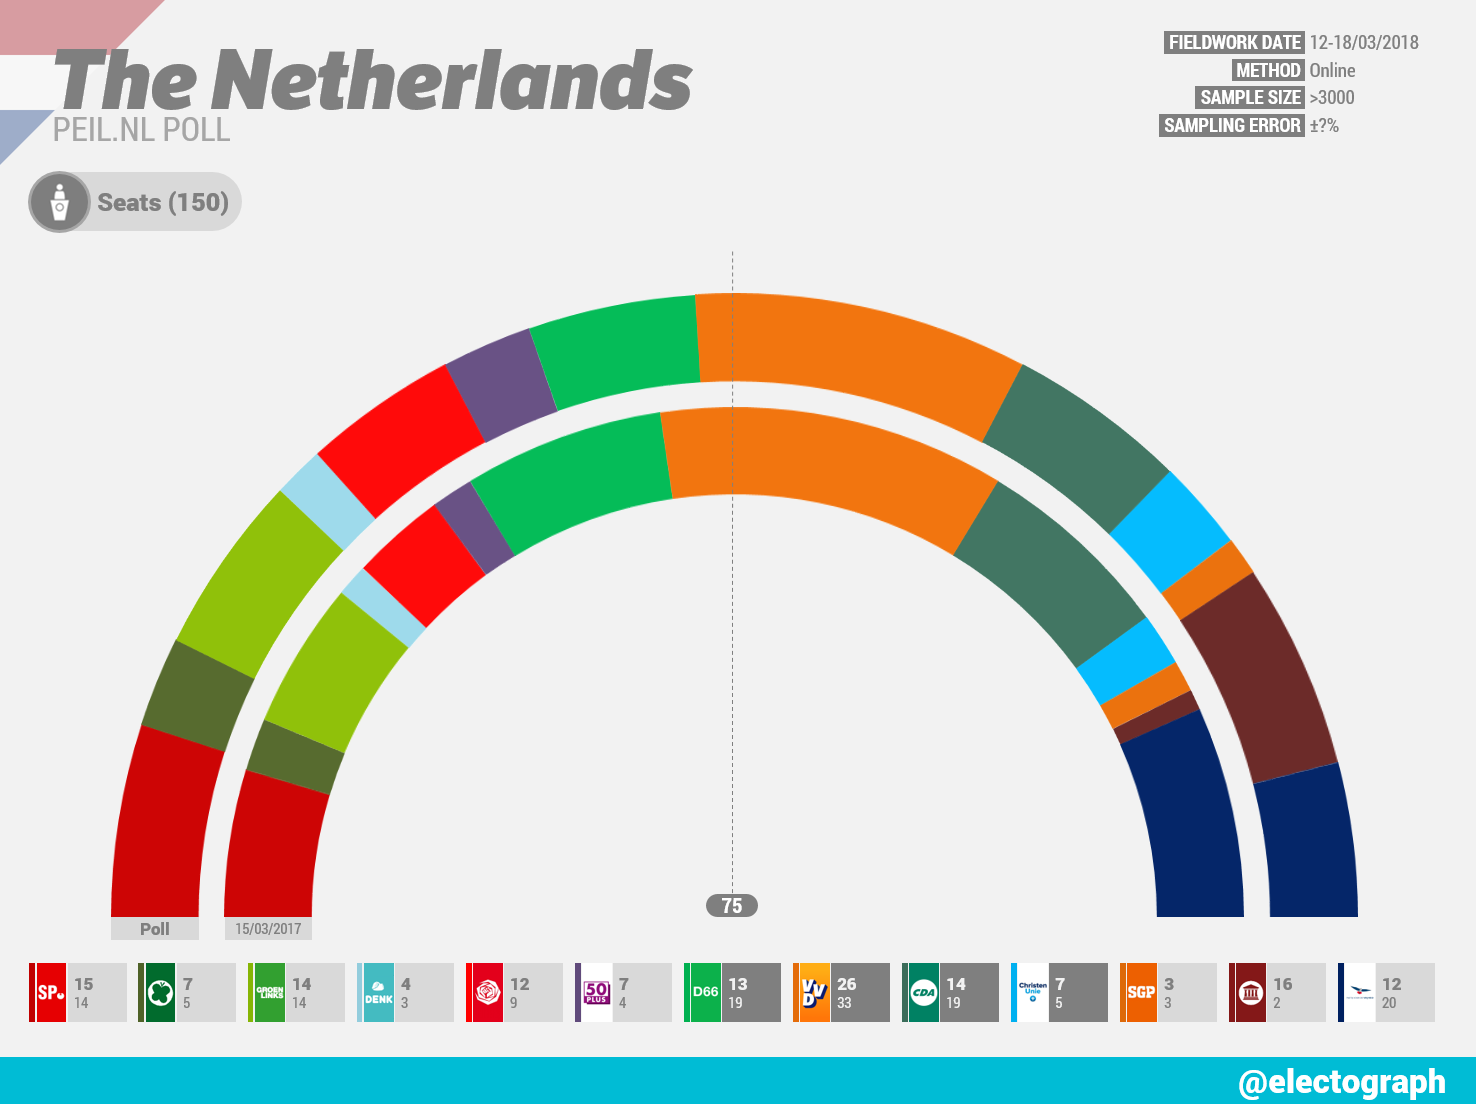 THE NETHERLANDS Peil.nl poll chart, March 2018